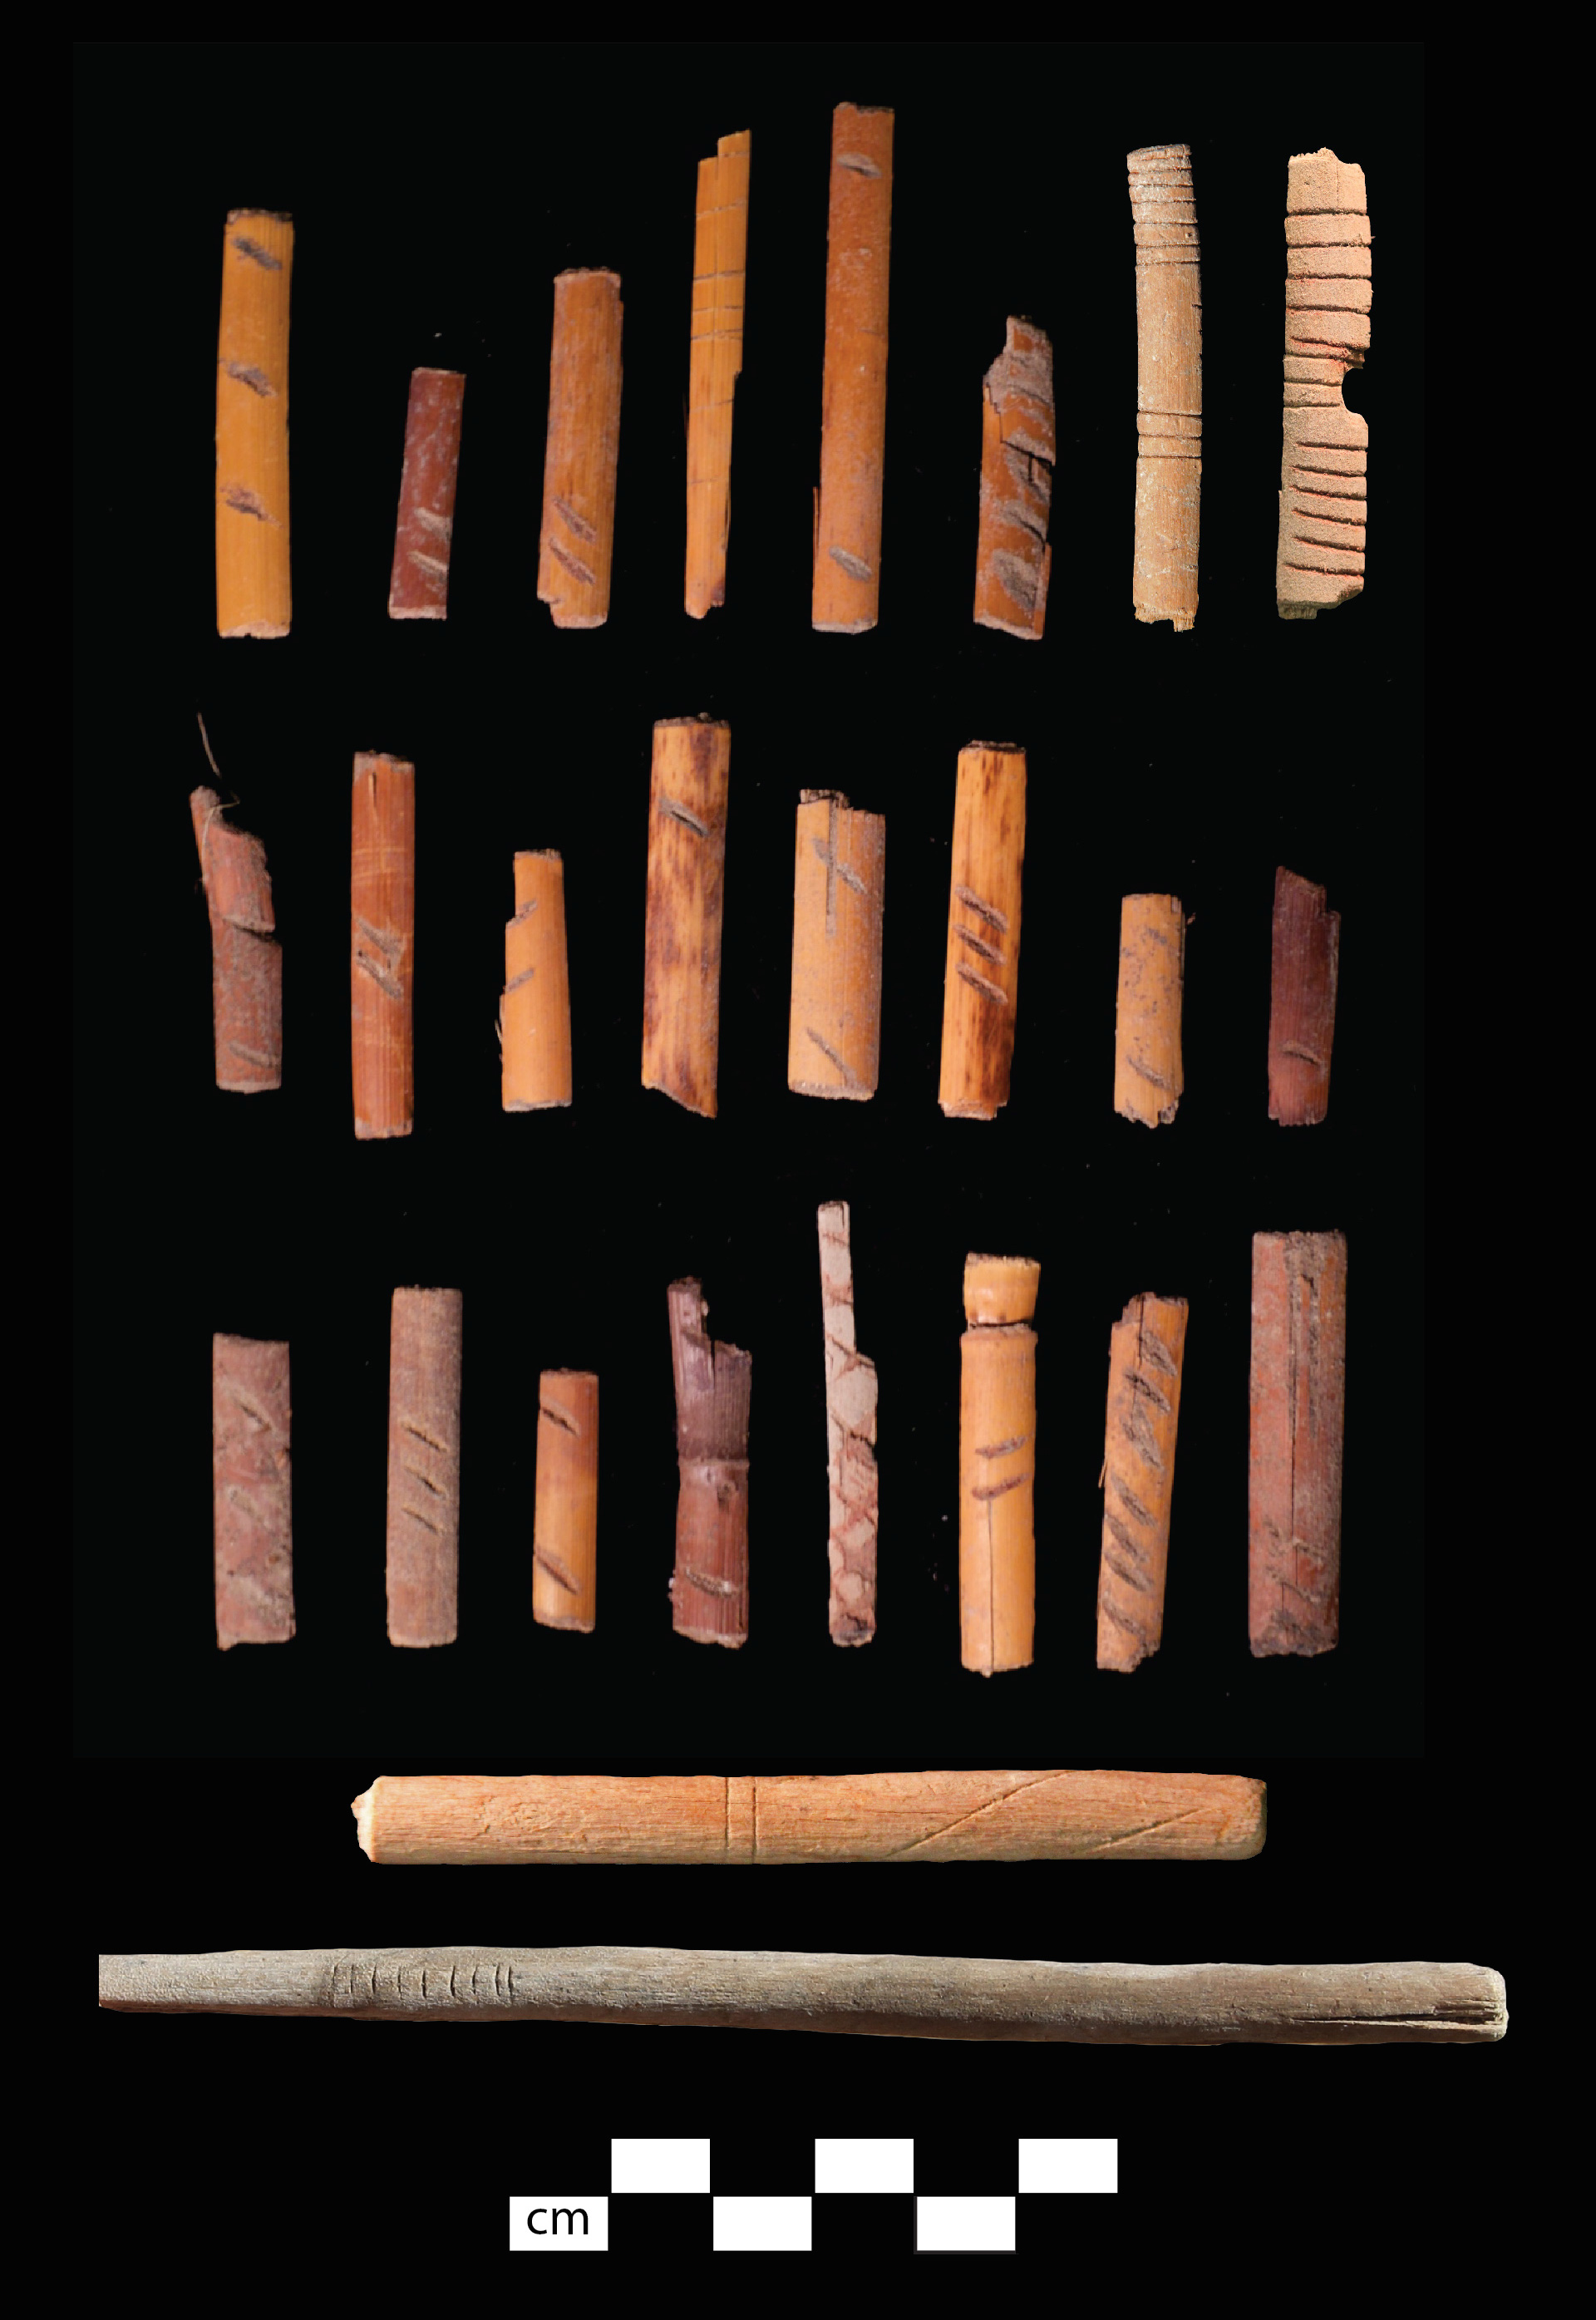 Promontory Culture cane dice and gaming sticks